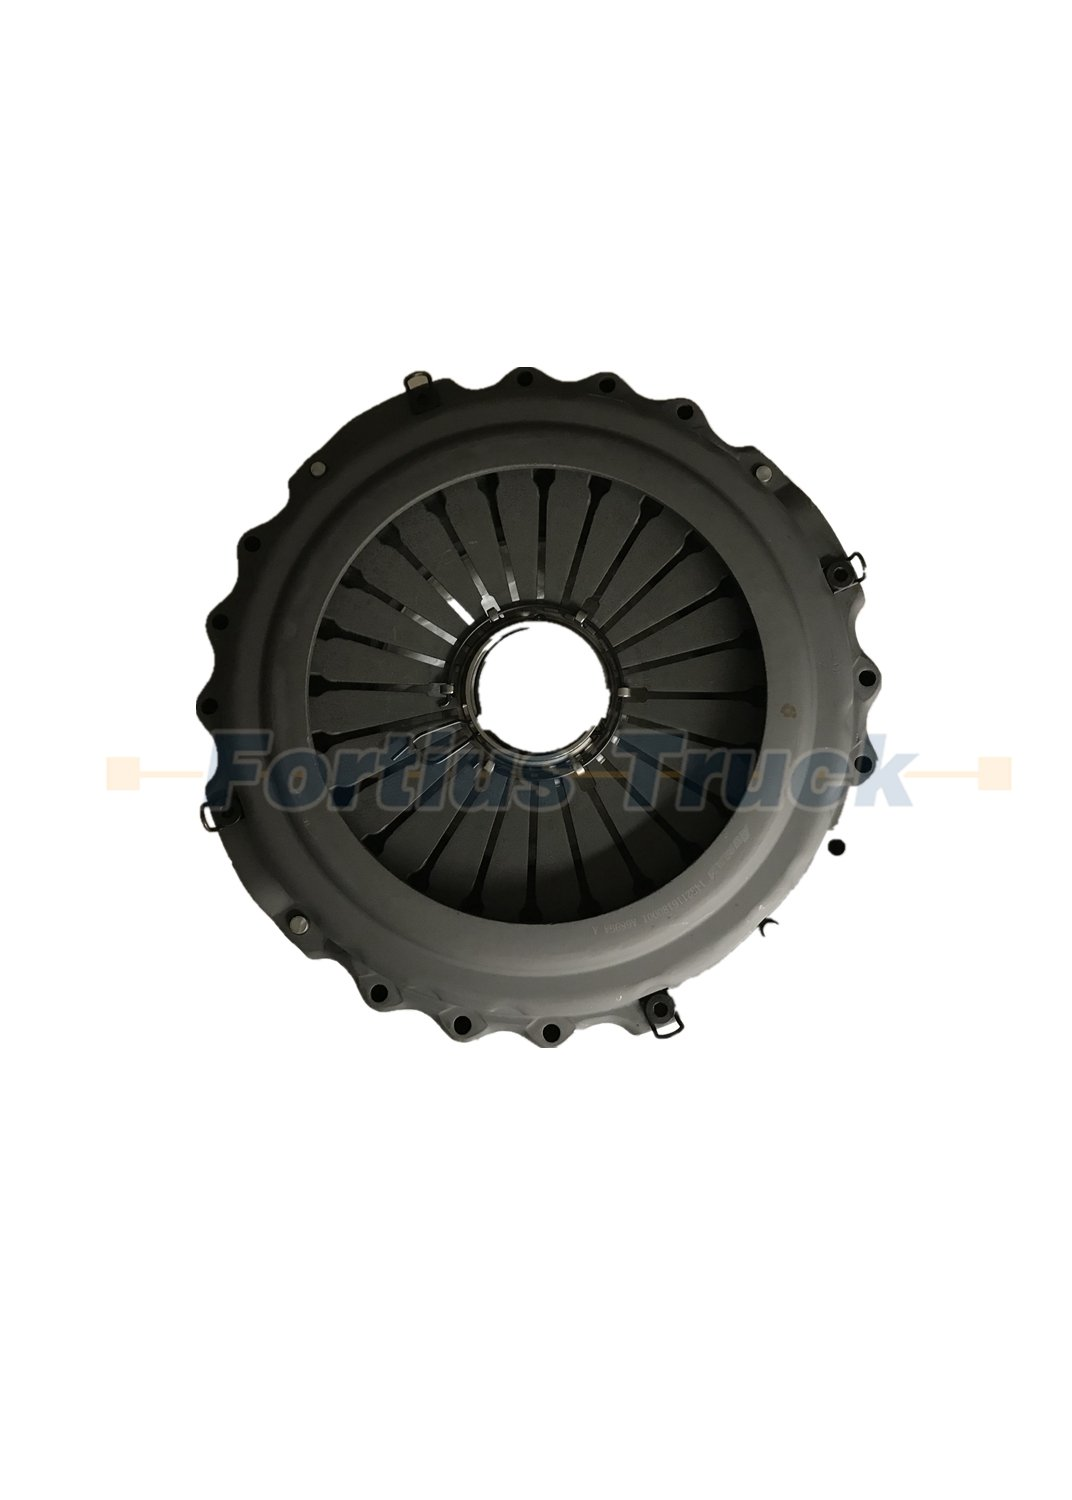 Valeo Clutch Cover 1432116180001 A6899A